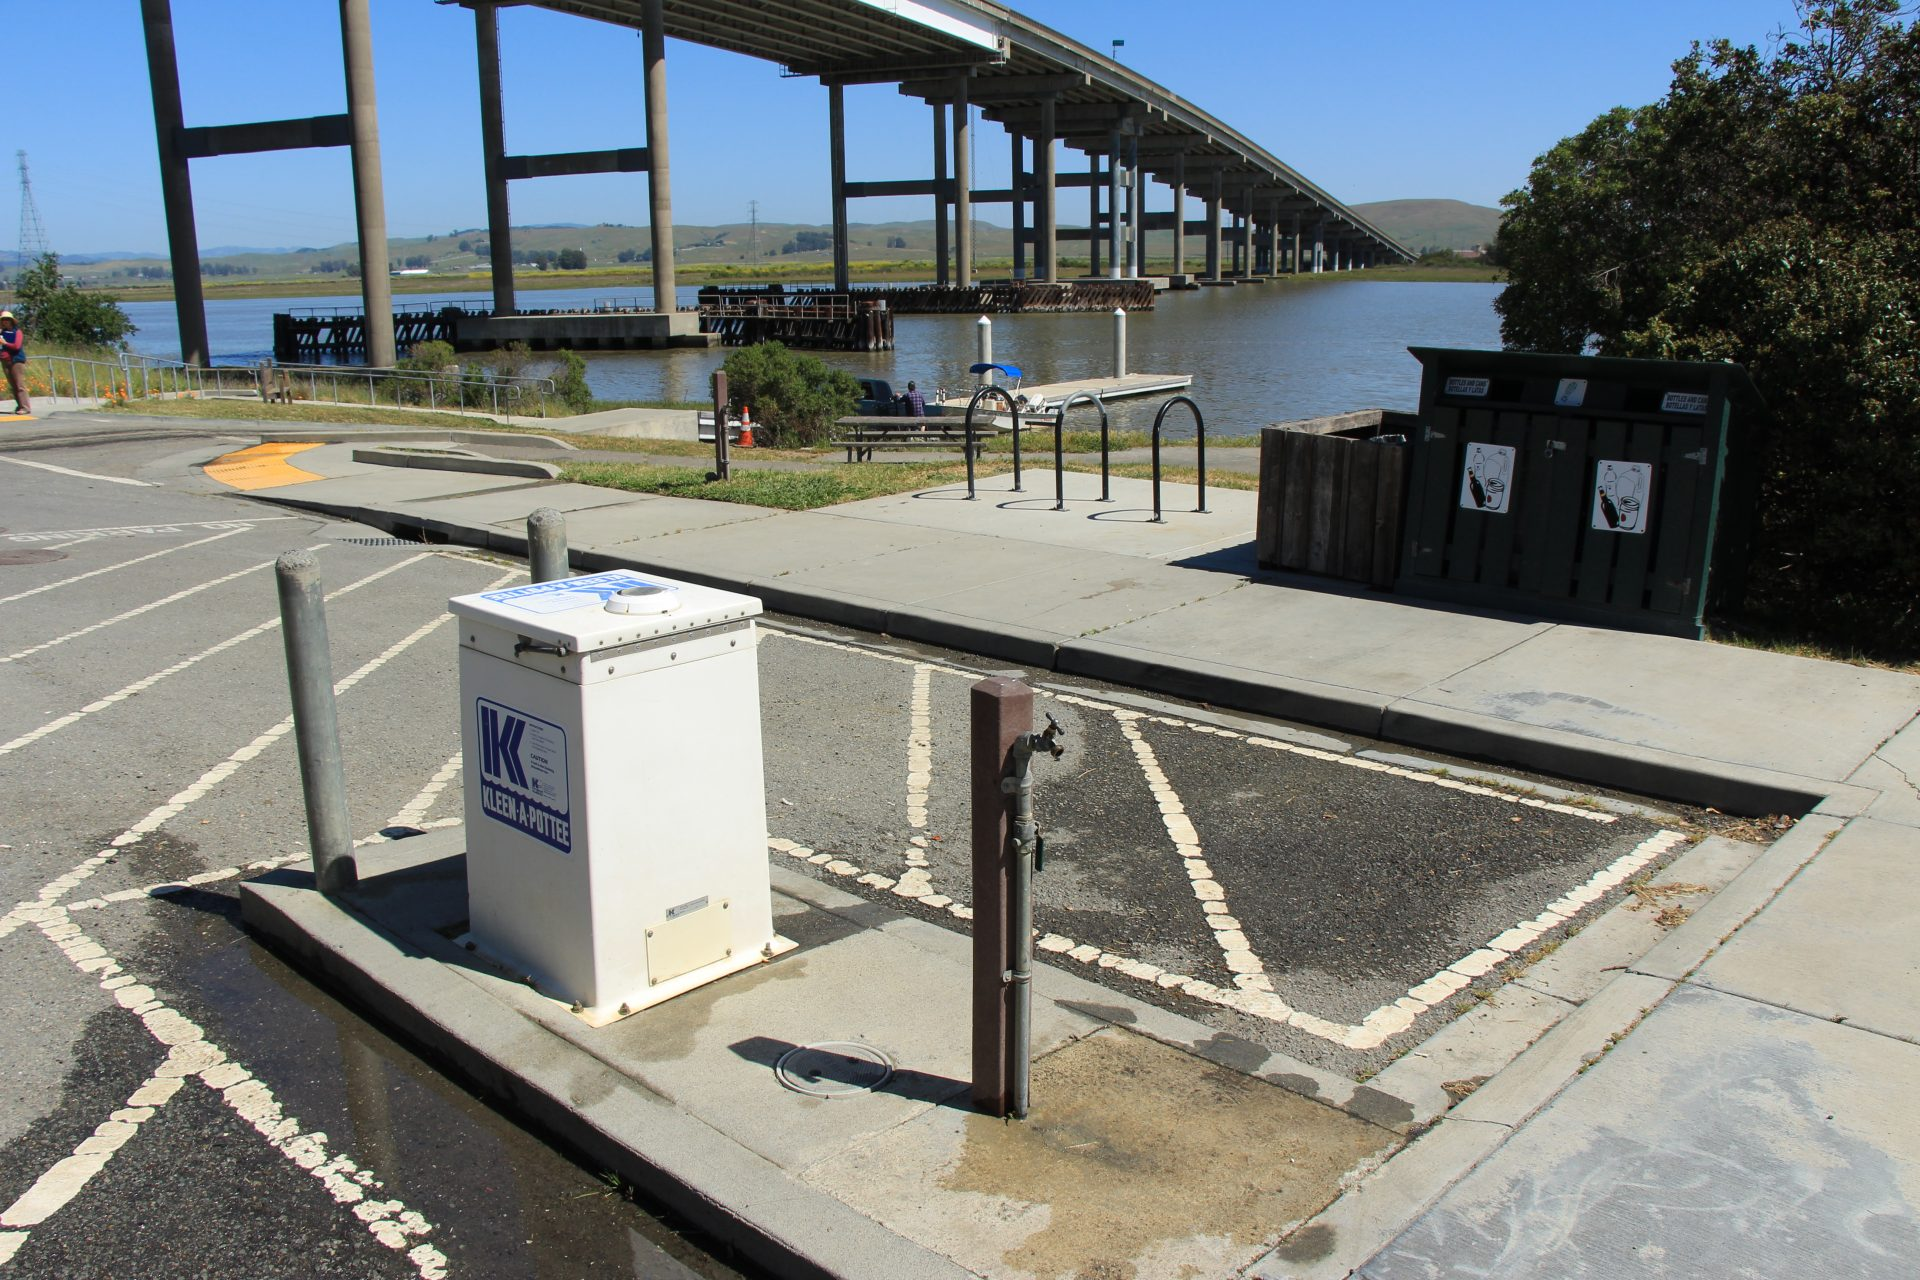 Parking area with water spigot